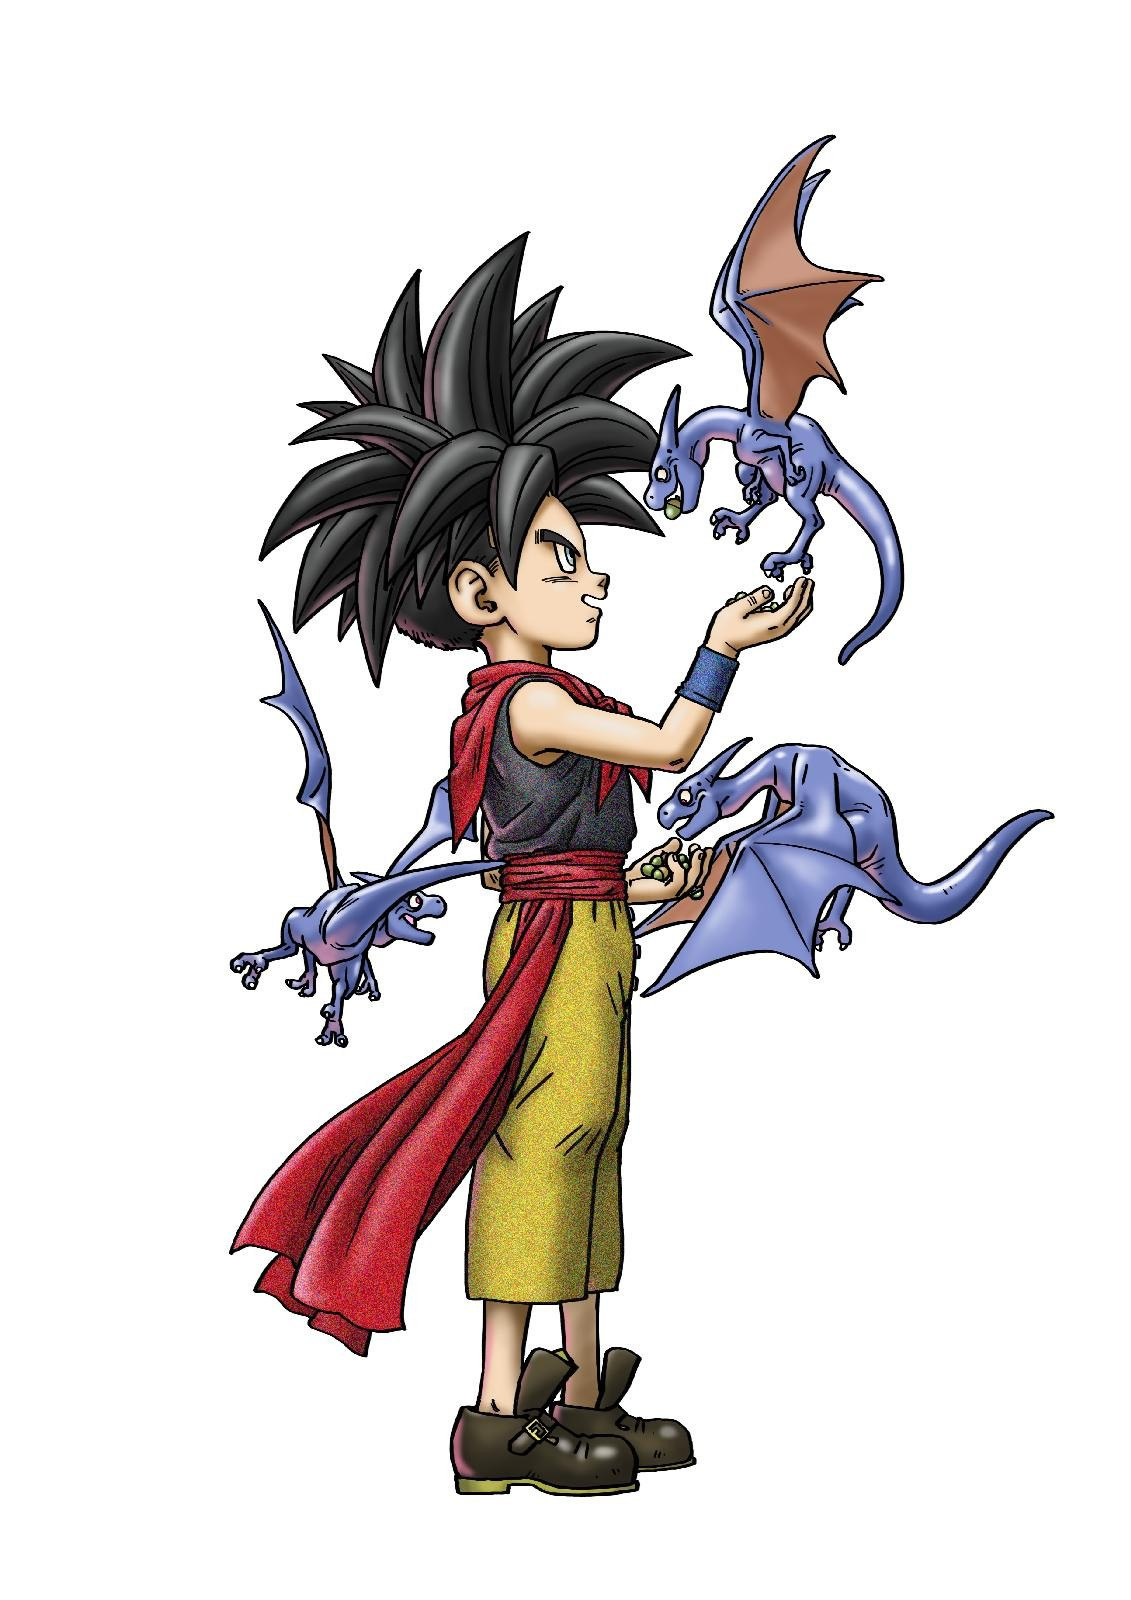 dqm joker monster matchmaking Background dragon quest monsters: joker (ドラゴンクエストモンスターズ ジョーカー, doragon kuesuto monsutazu joka) is the latest game to be released in the monster catching dragon warrior monsters spin off series.